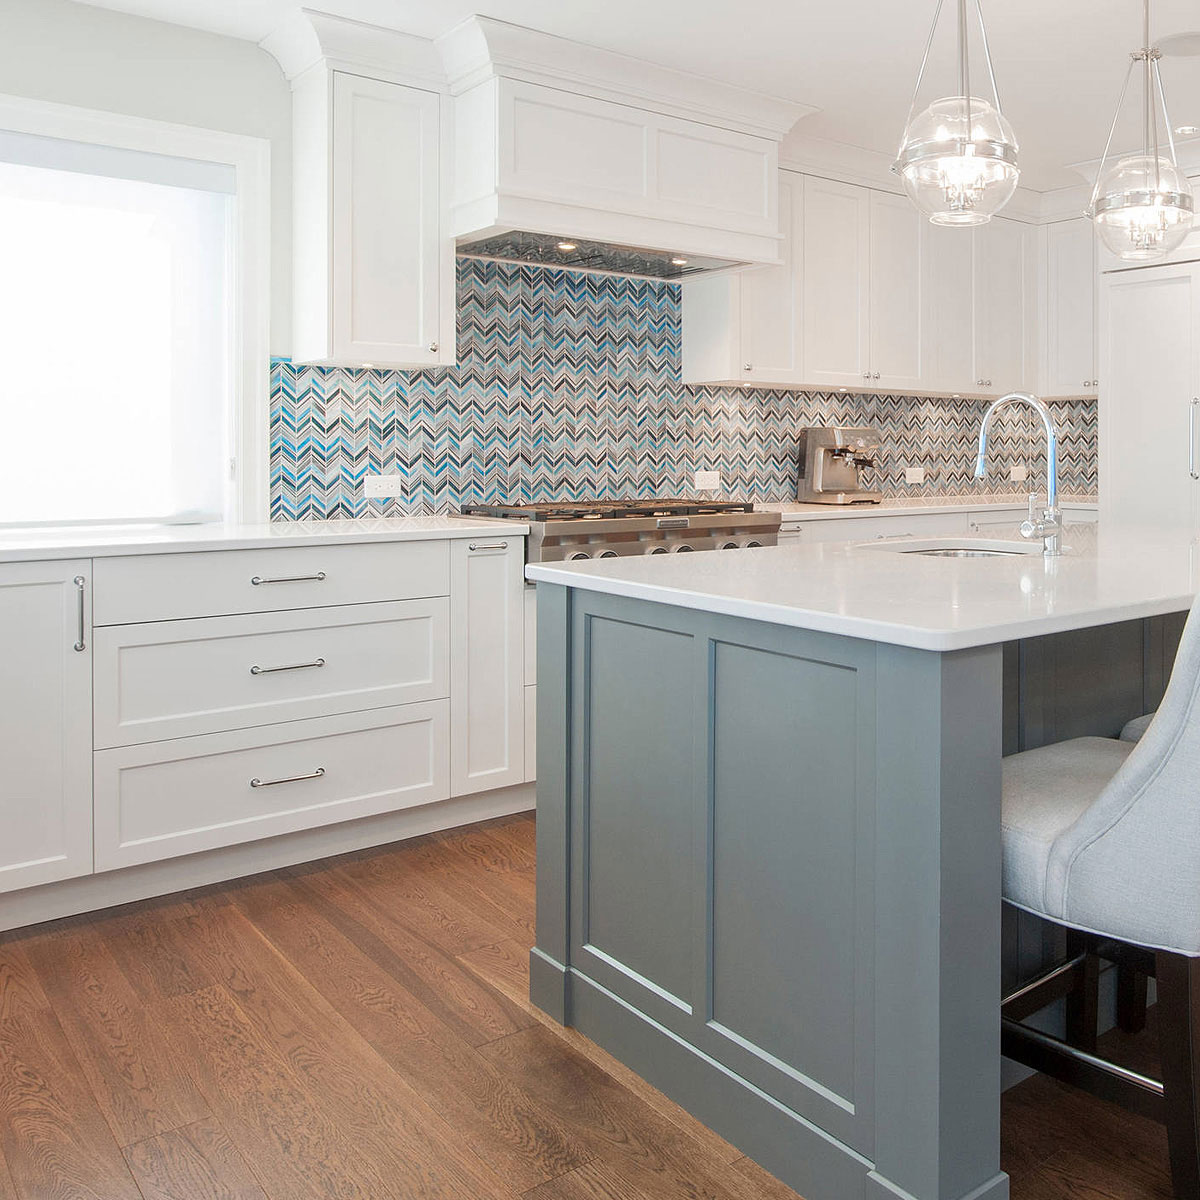 White Kitchen Cabinets Quartz Countertop Chevron Blue Mosaic Kitchen Backsplash Tile Backsplash Com